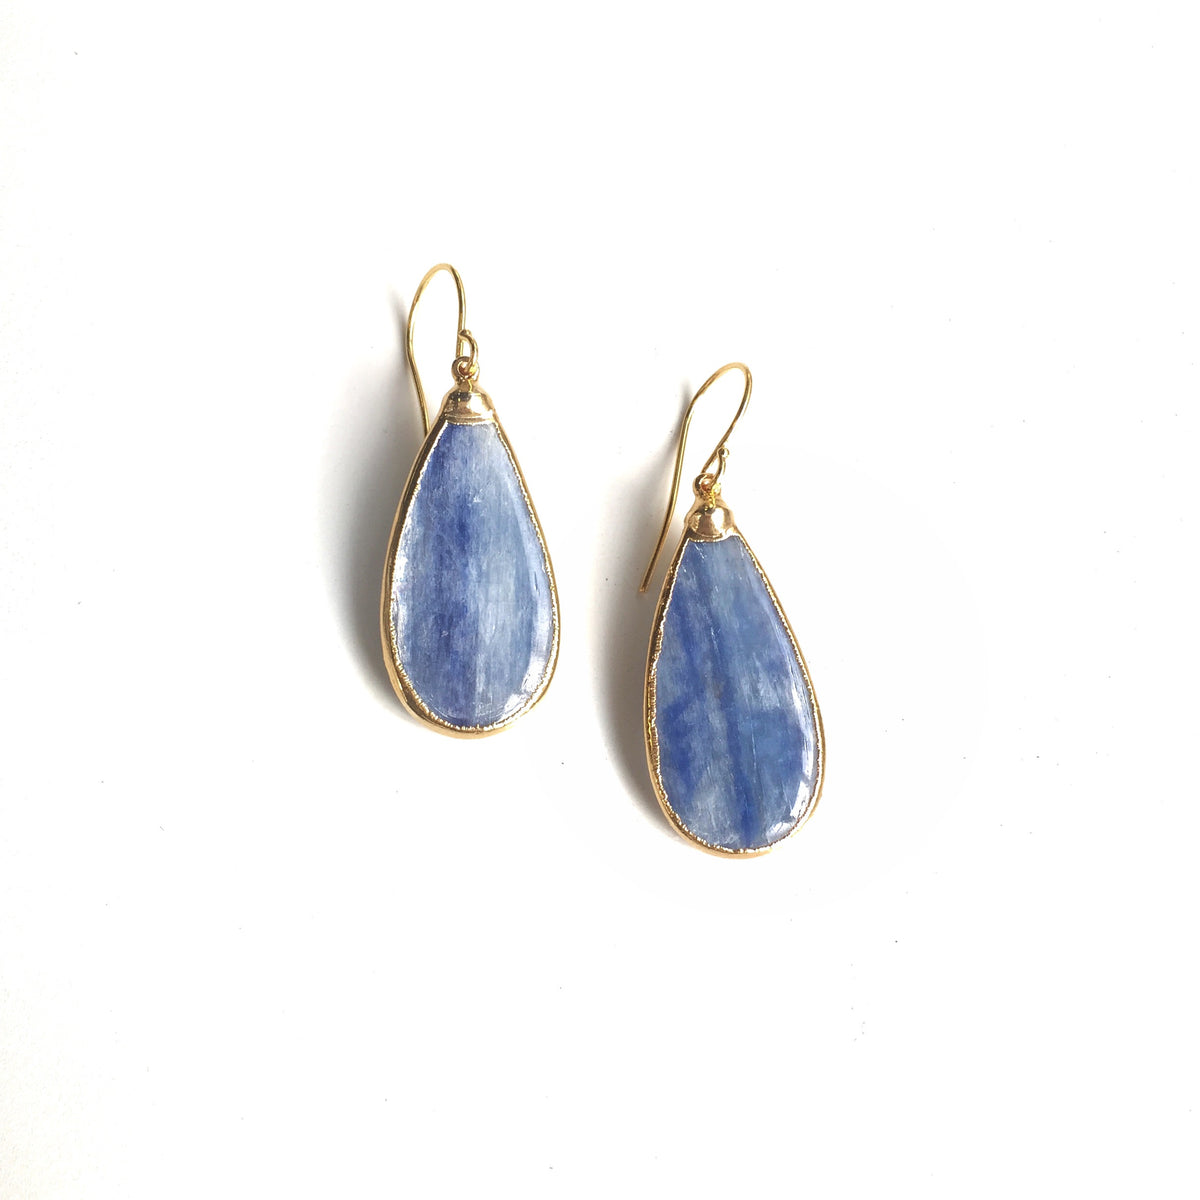 4574e-sarotte-earrings-in-kyanite